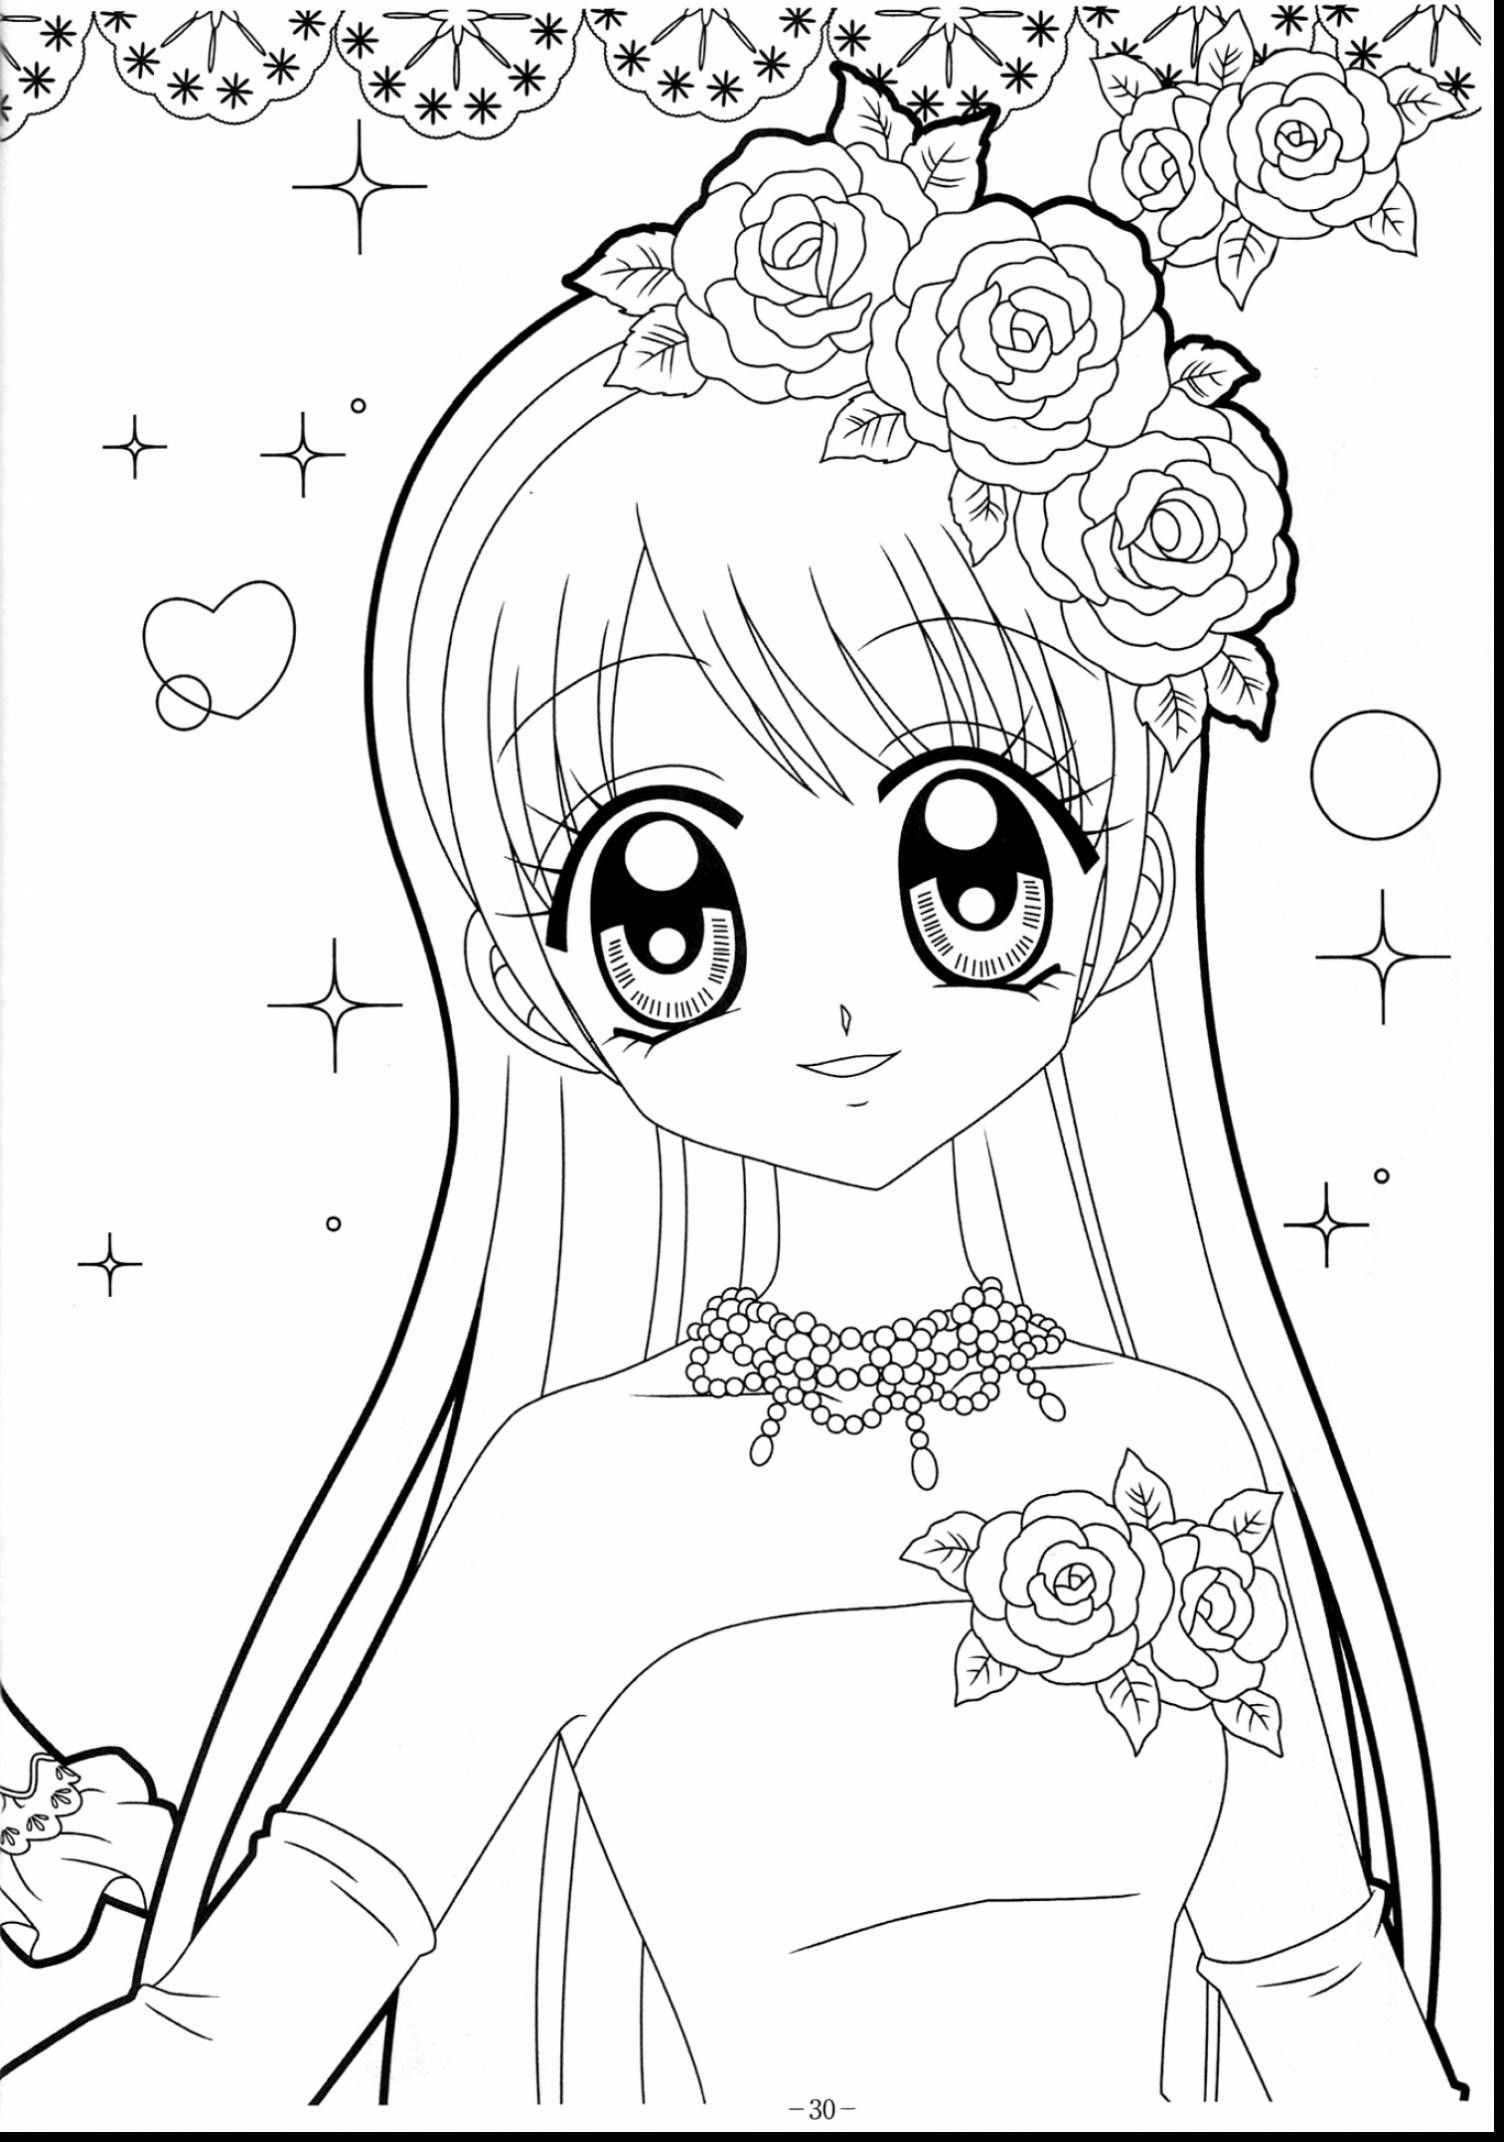 anime girl coloring pictures kawaii coloring pages at getdrawings free download anime pictures coloring girl